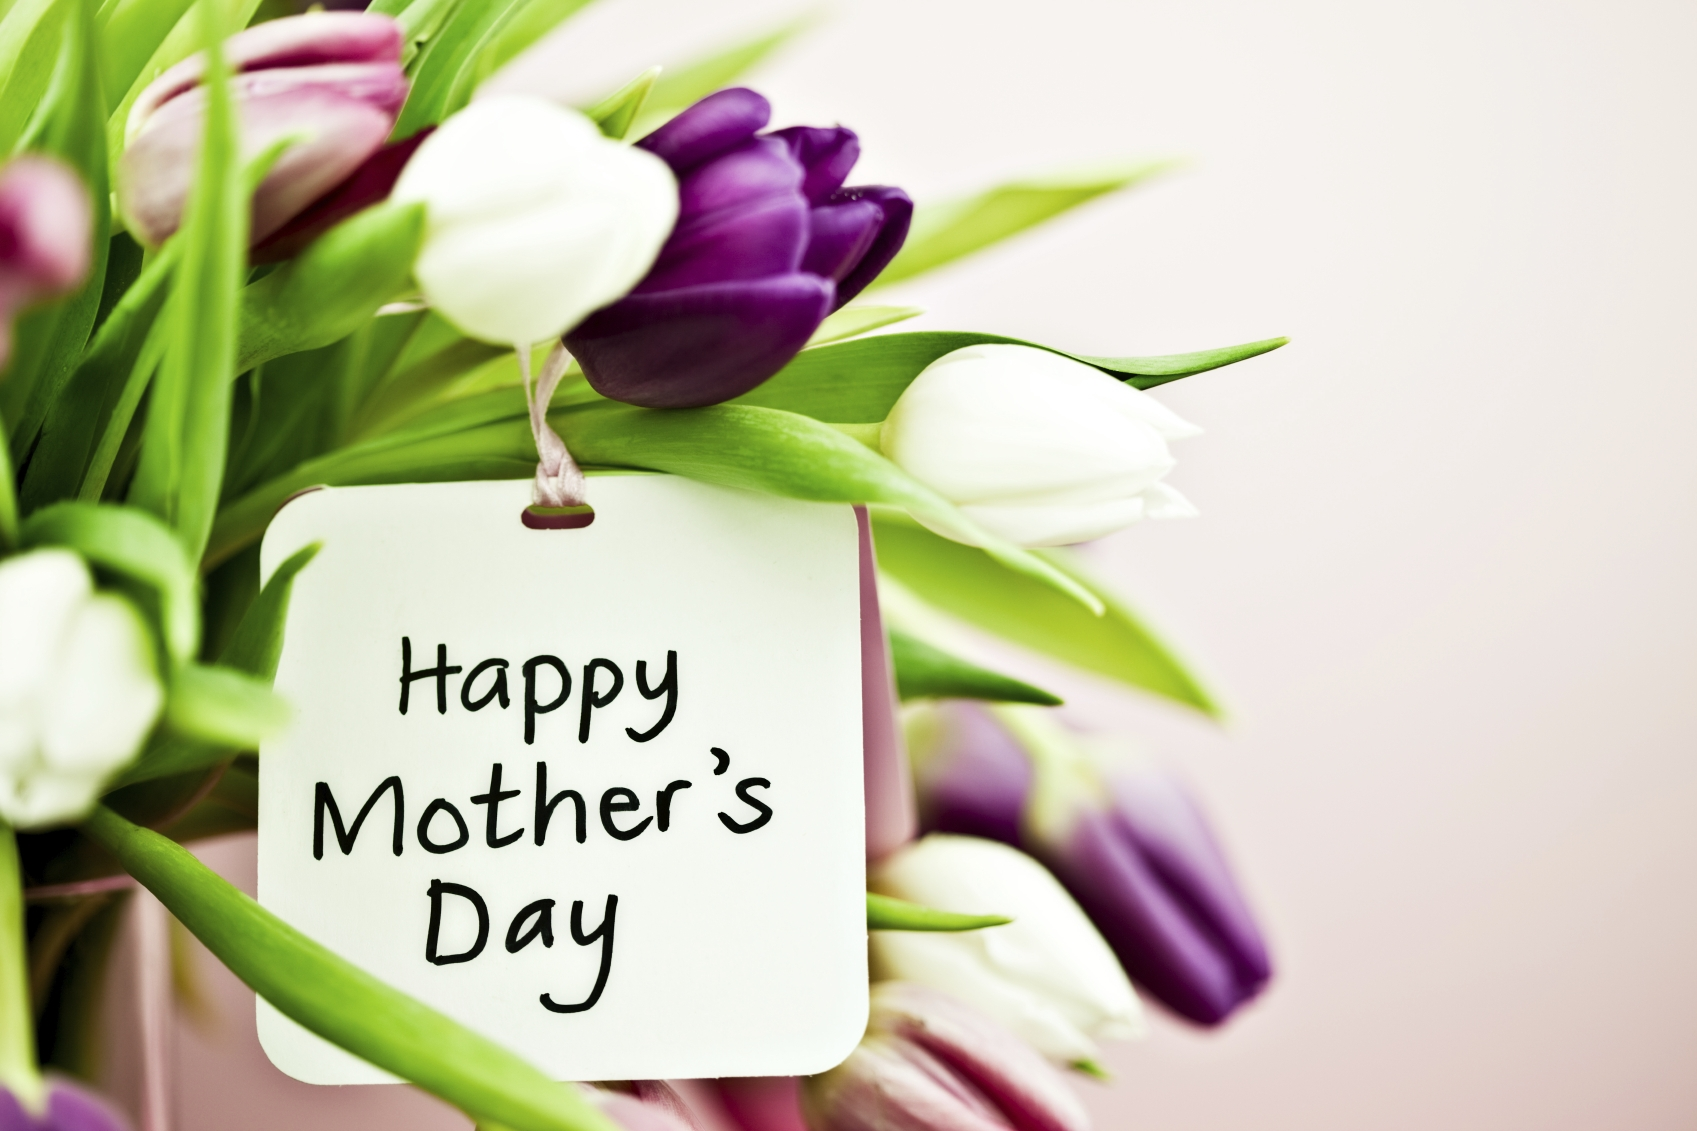 Happy Mothers Day 2018 quot;s, images